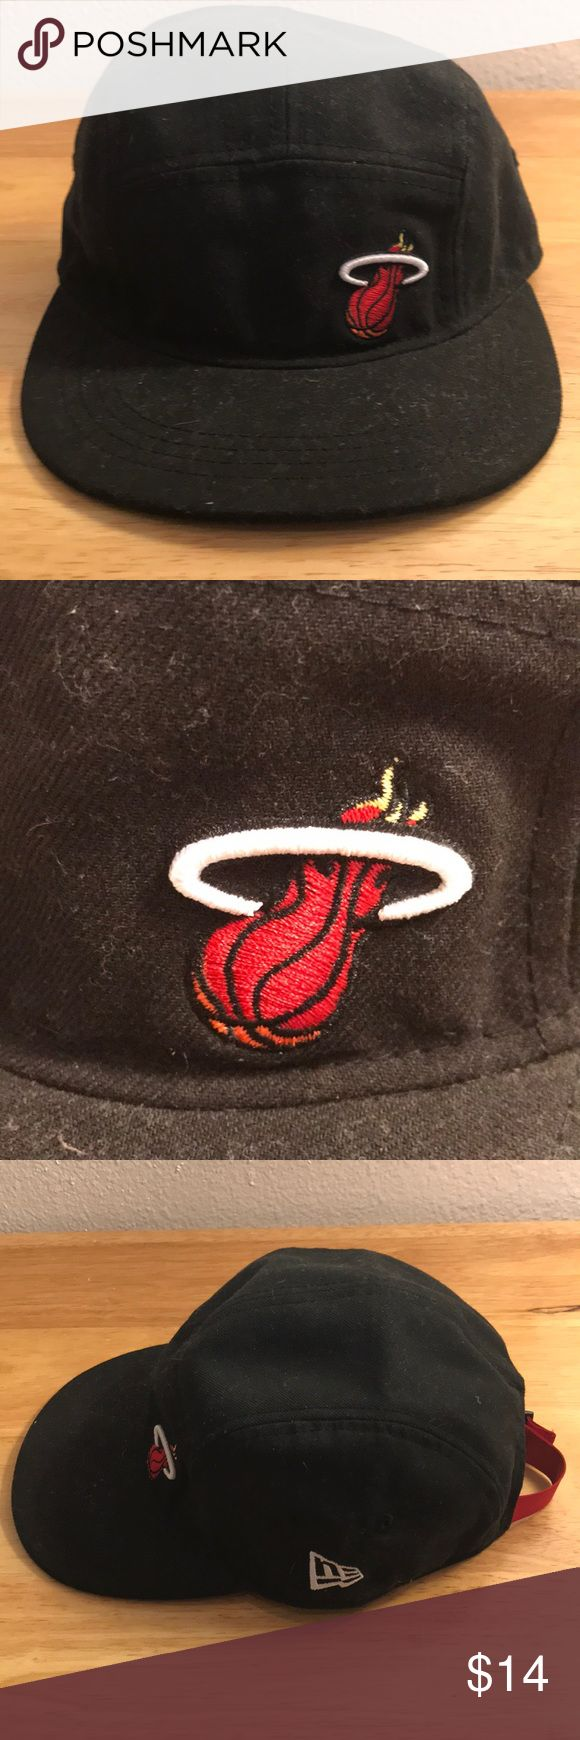 New Era Miami Heat 5 Panel Hat New Era Miami Heat 5 Panel Hat, Used, 🎄WILL SHIP IN ONE DAY🎄All bundles of 2 or more receive 20% off. Closet full of new, used and vintage Vans, Skate and surf companies, jewelry, phone cases, shoes and more. New Era Accessories Hats